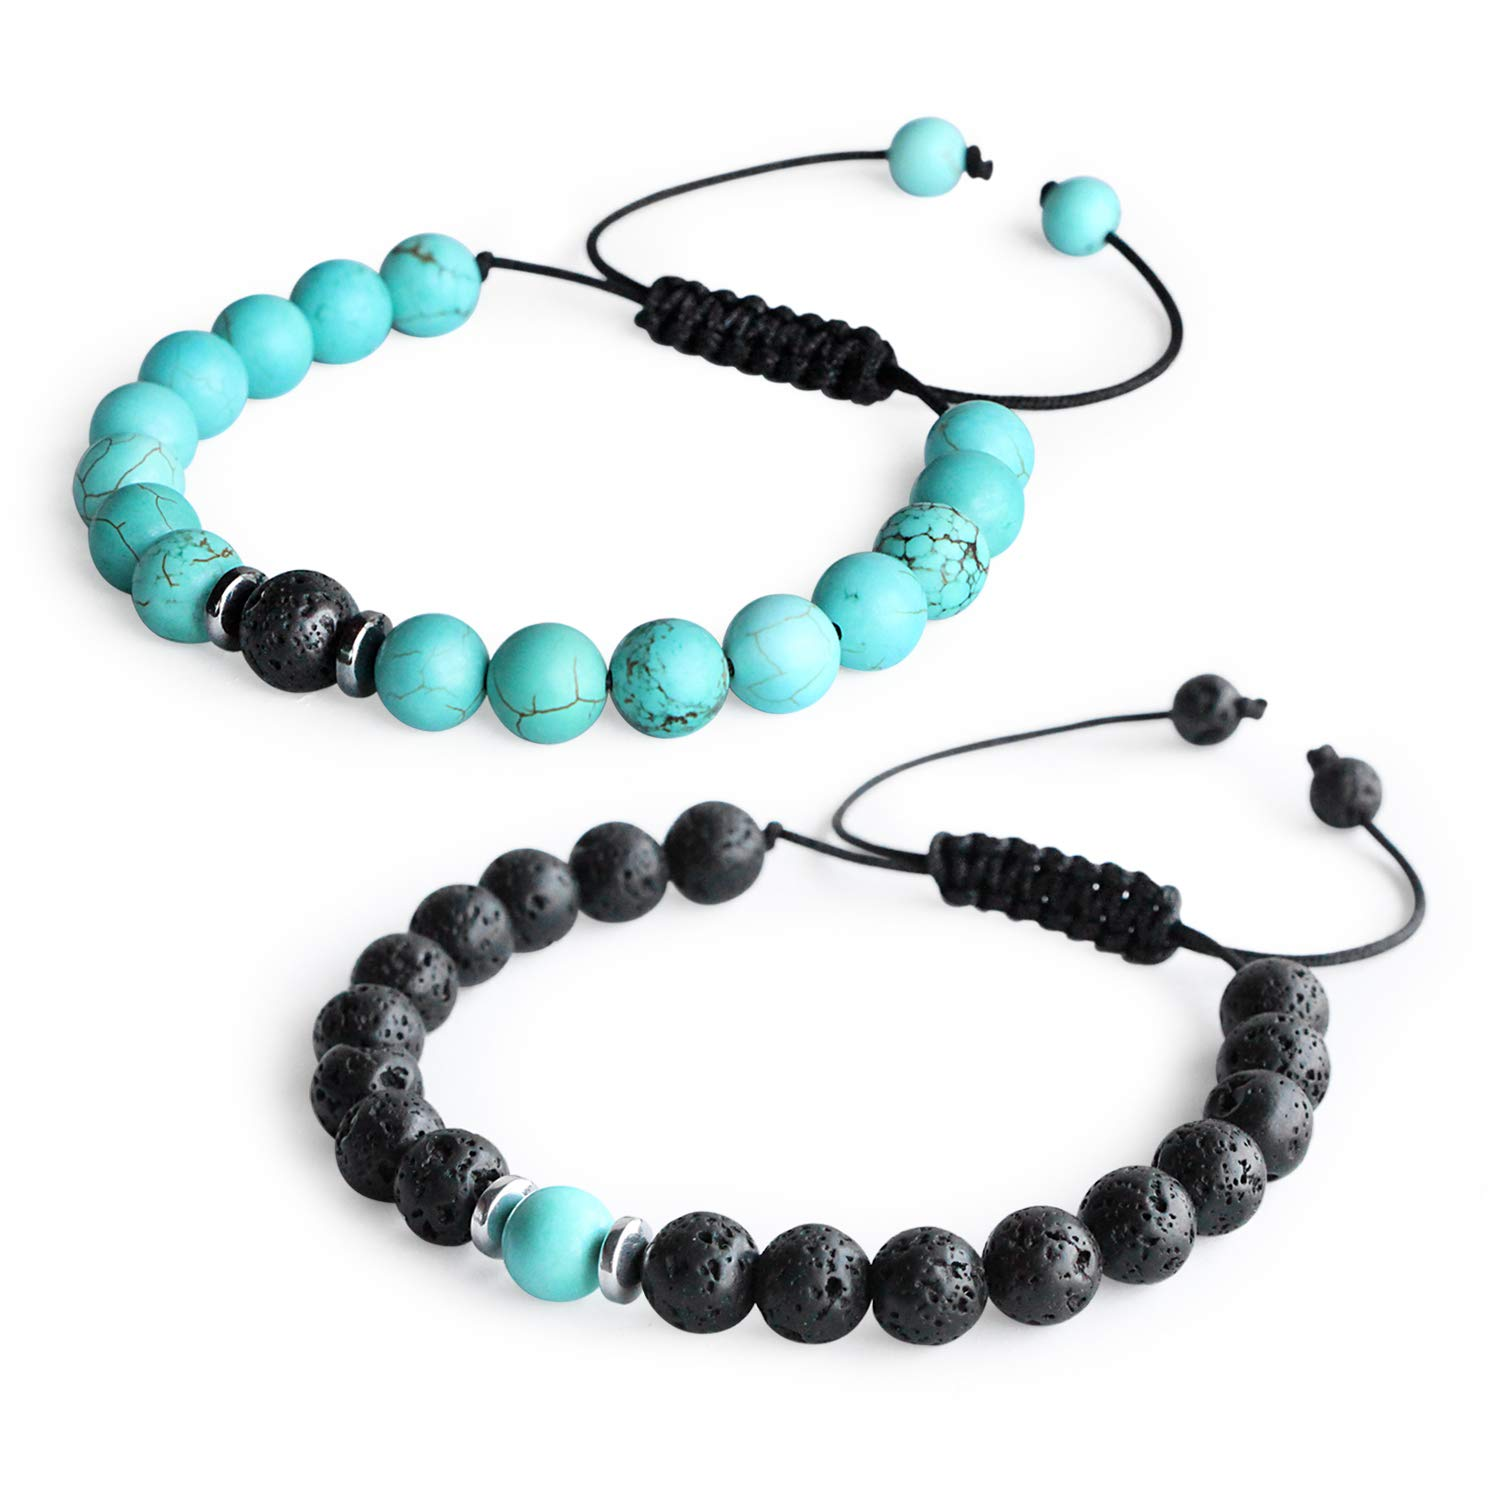 Me&Hz Braided Long Distance Bracelets Set for Women Men-Natural Turquoise Teal &Black Lava Stone Beads Couple Bracelets-Adjustable Band